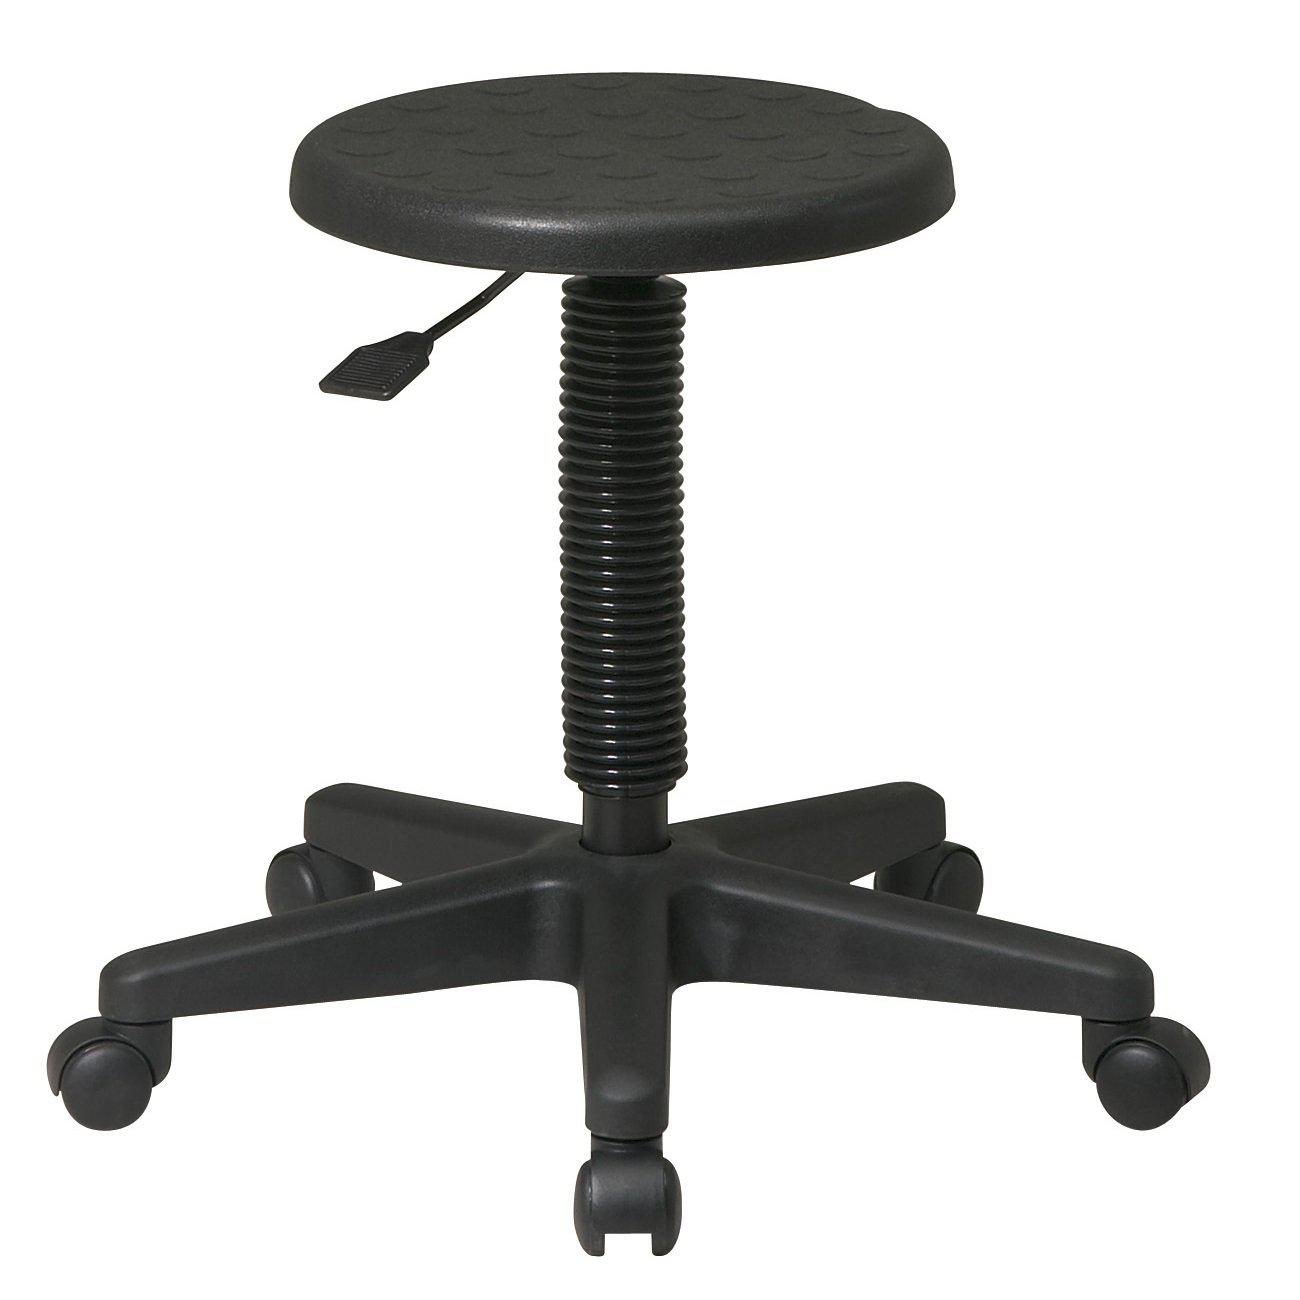 Intermediate Stool with Dual Wheel Casters